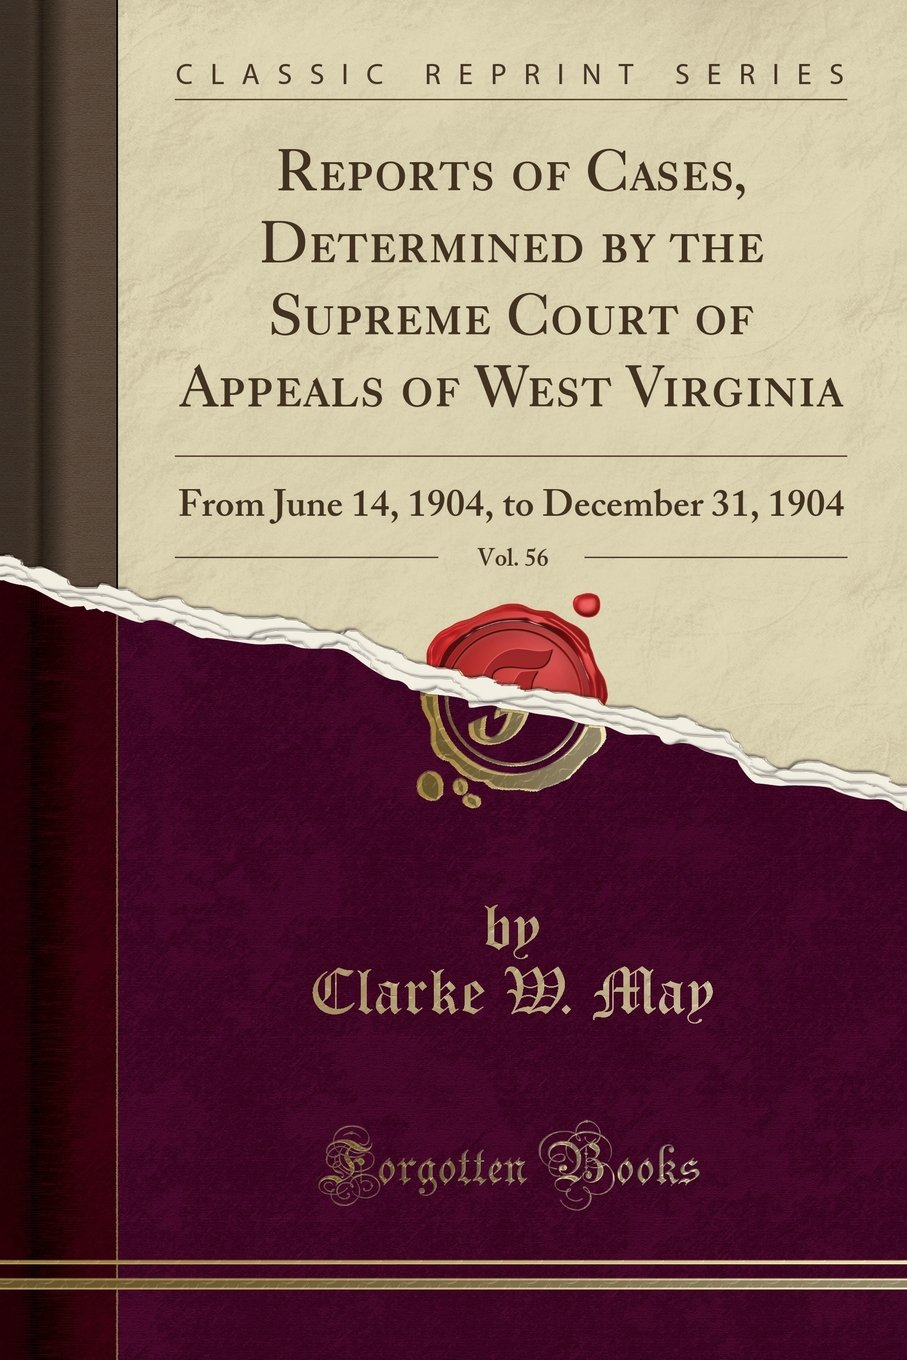 Read Online Reports of Cases, Determined by the Supreme Court of Appeals of West Virginia, Vol. 56: From June 14, 1904, to December 31, 1904 (Classic Reprint) ebook